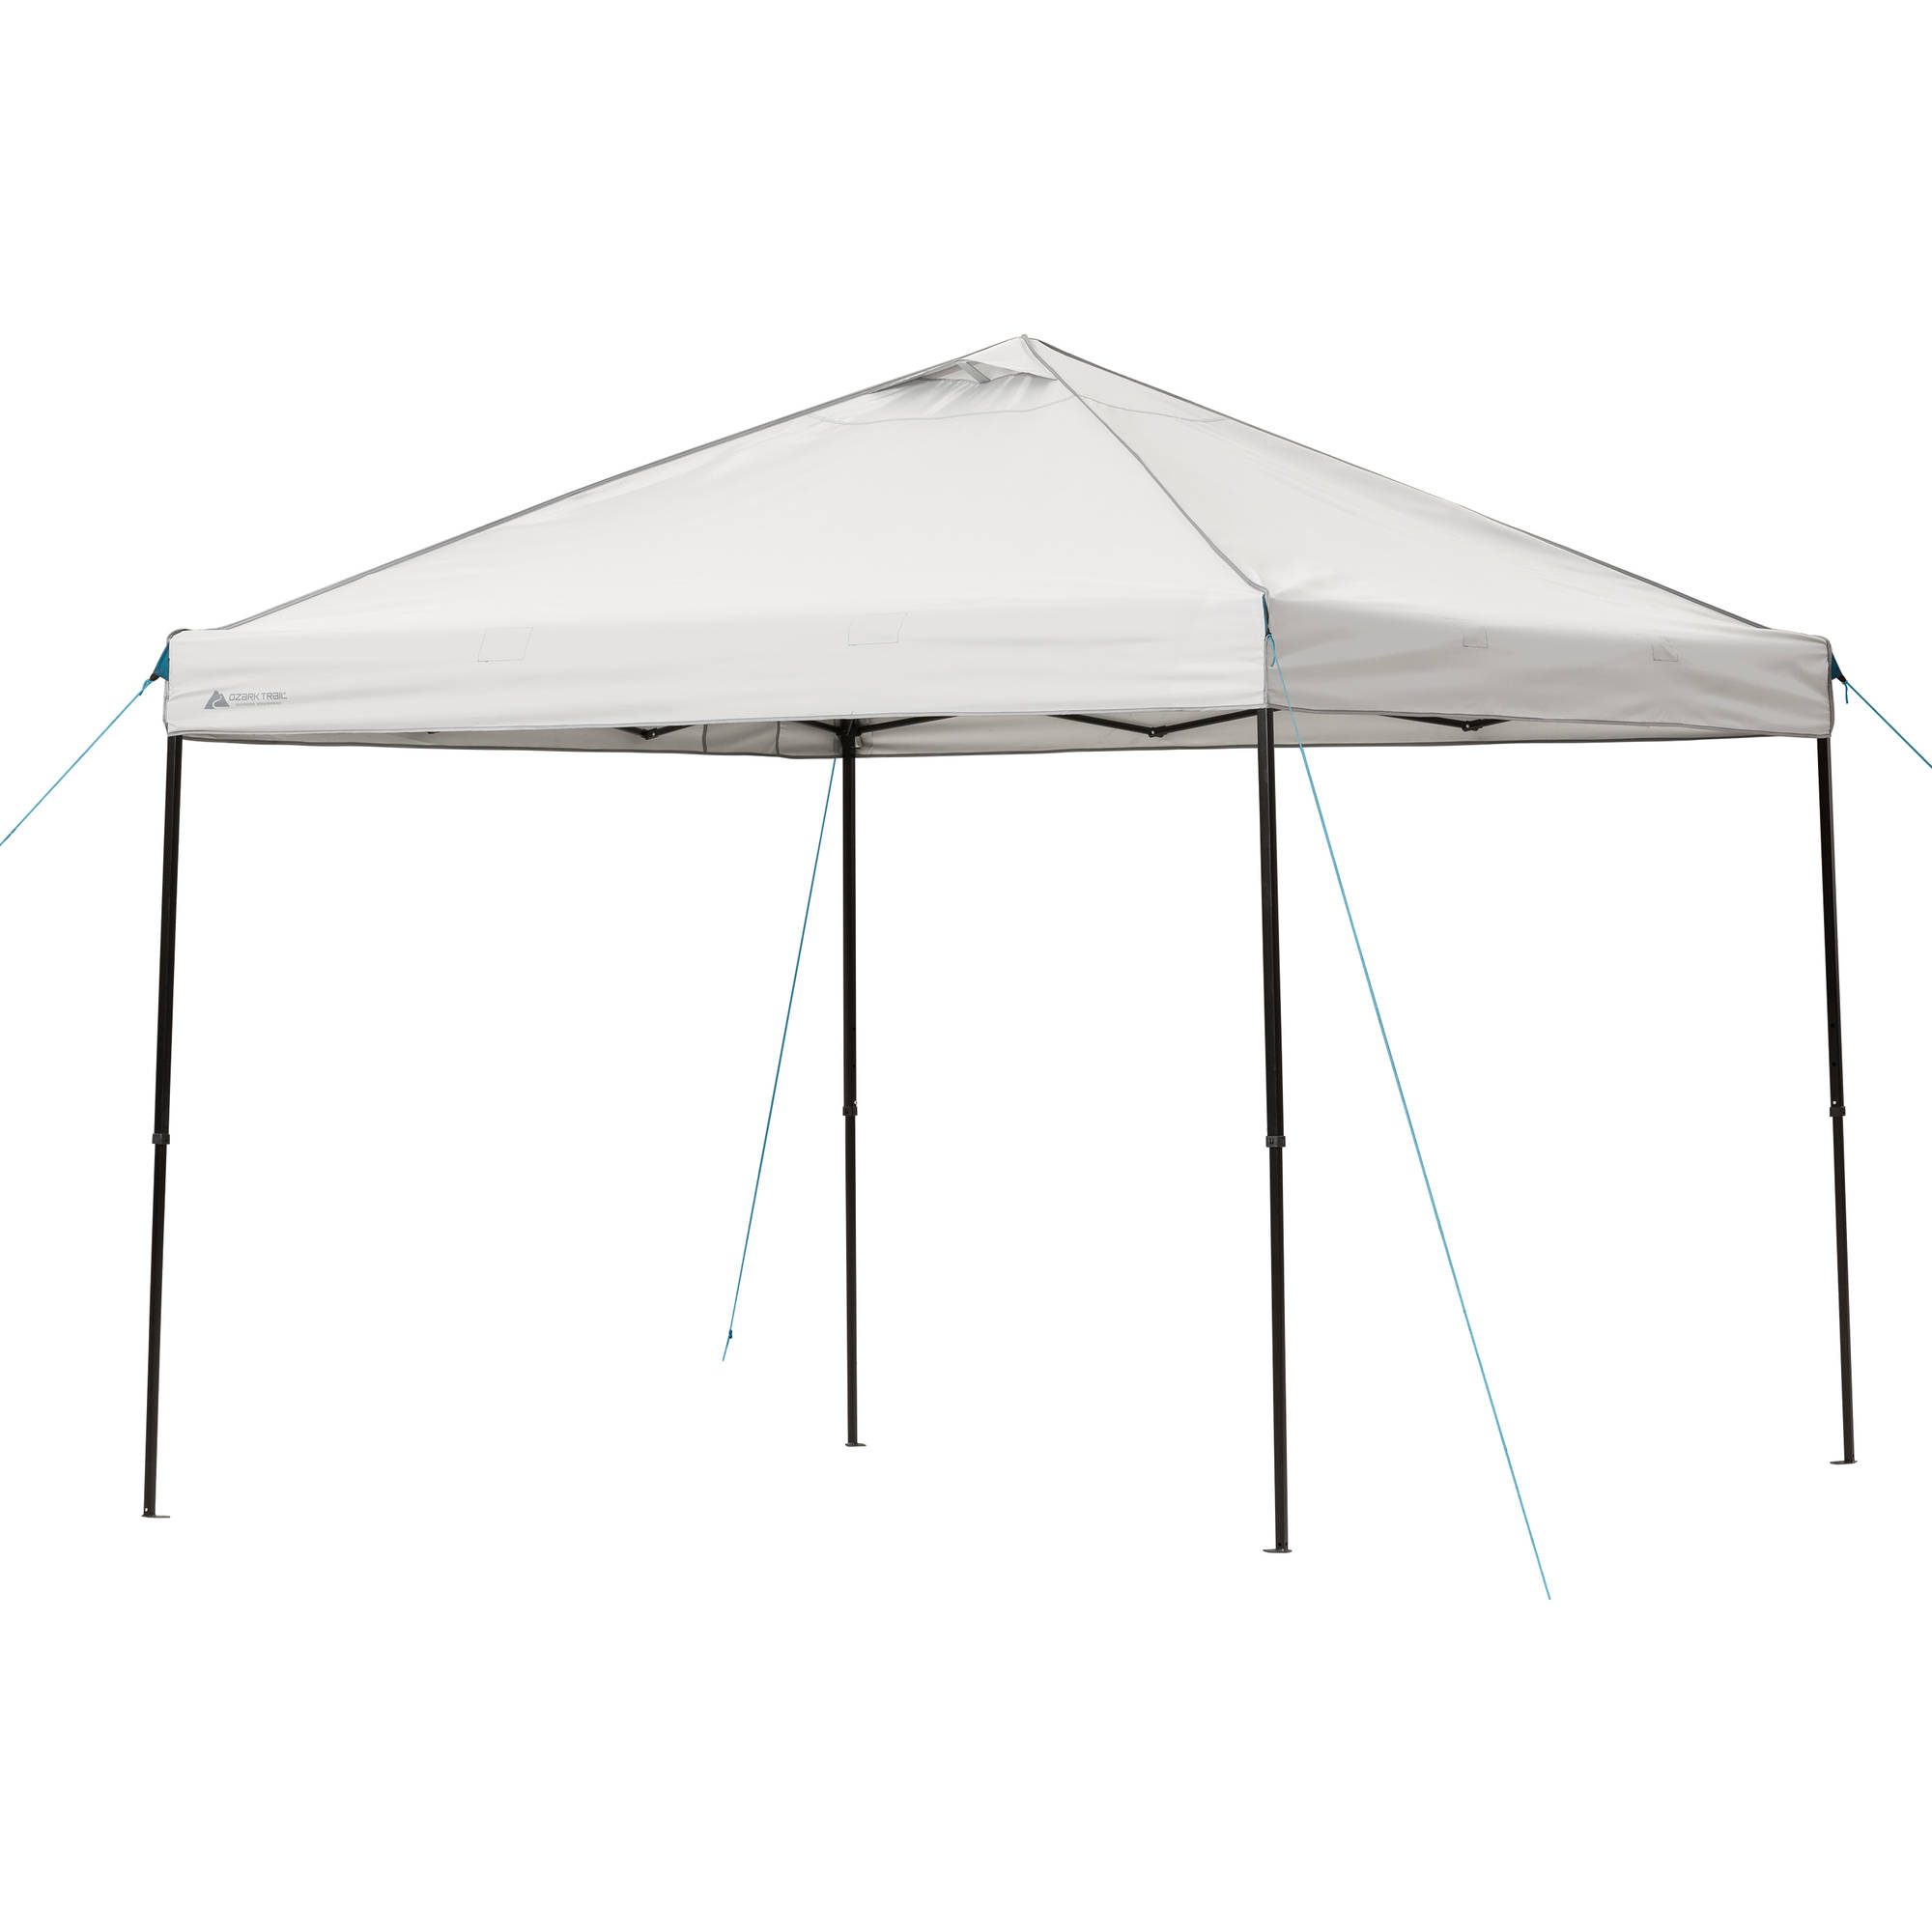 Do you have to take the canopy off the frame every time you take it down to put it in the bag?  sc 1 st  Walmart & Ozark Trail 10u0027 x 10u0027 Instant Canopy - Walmart.com